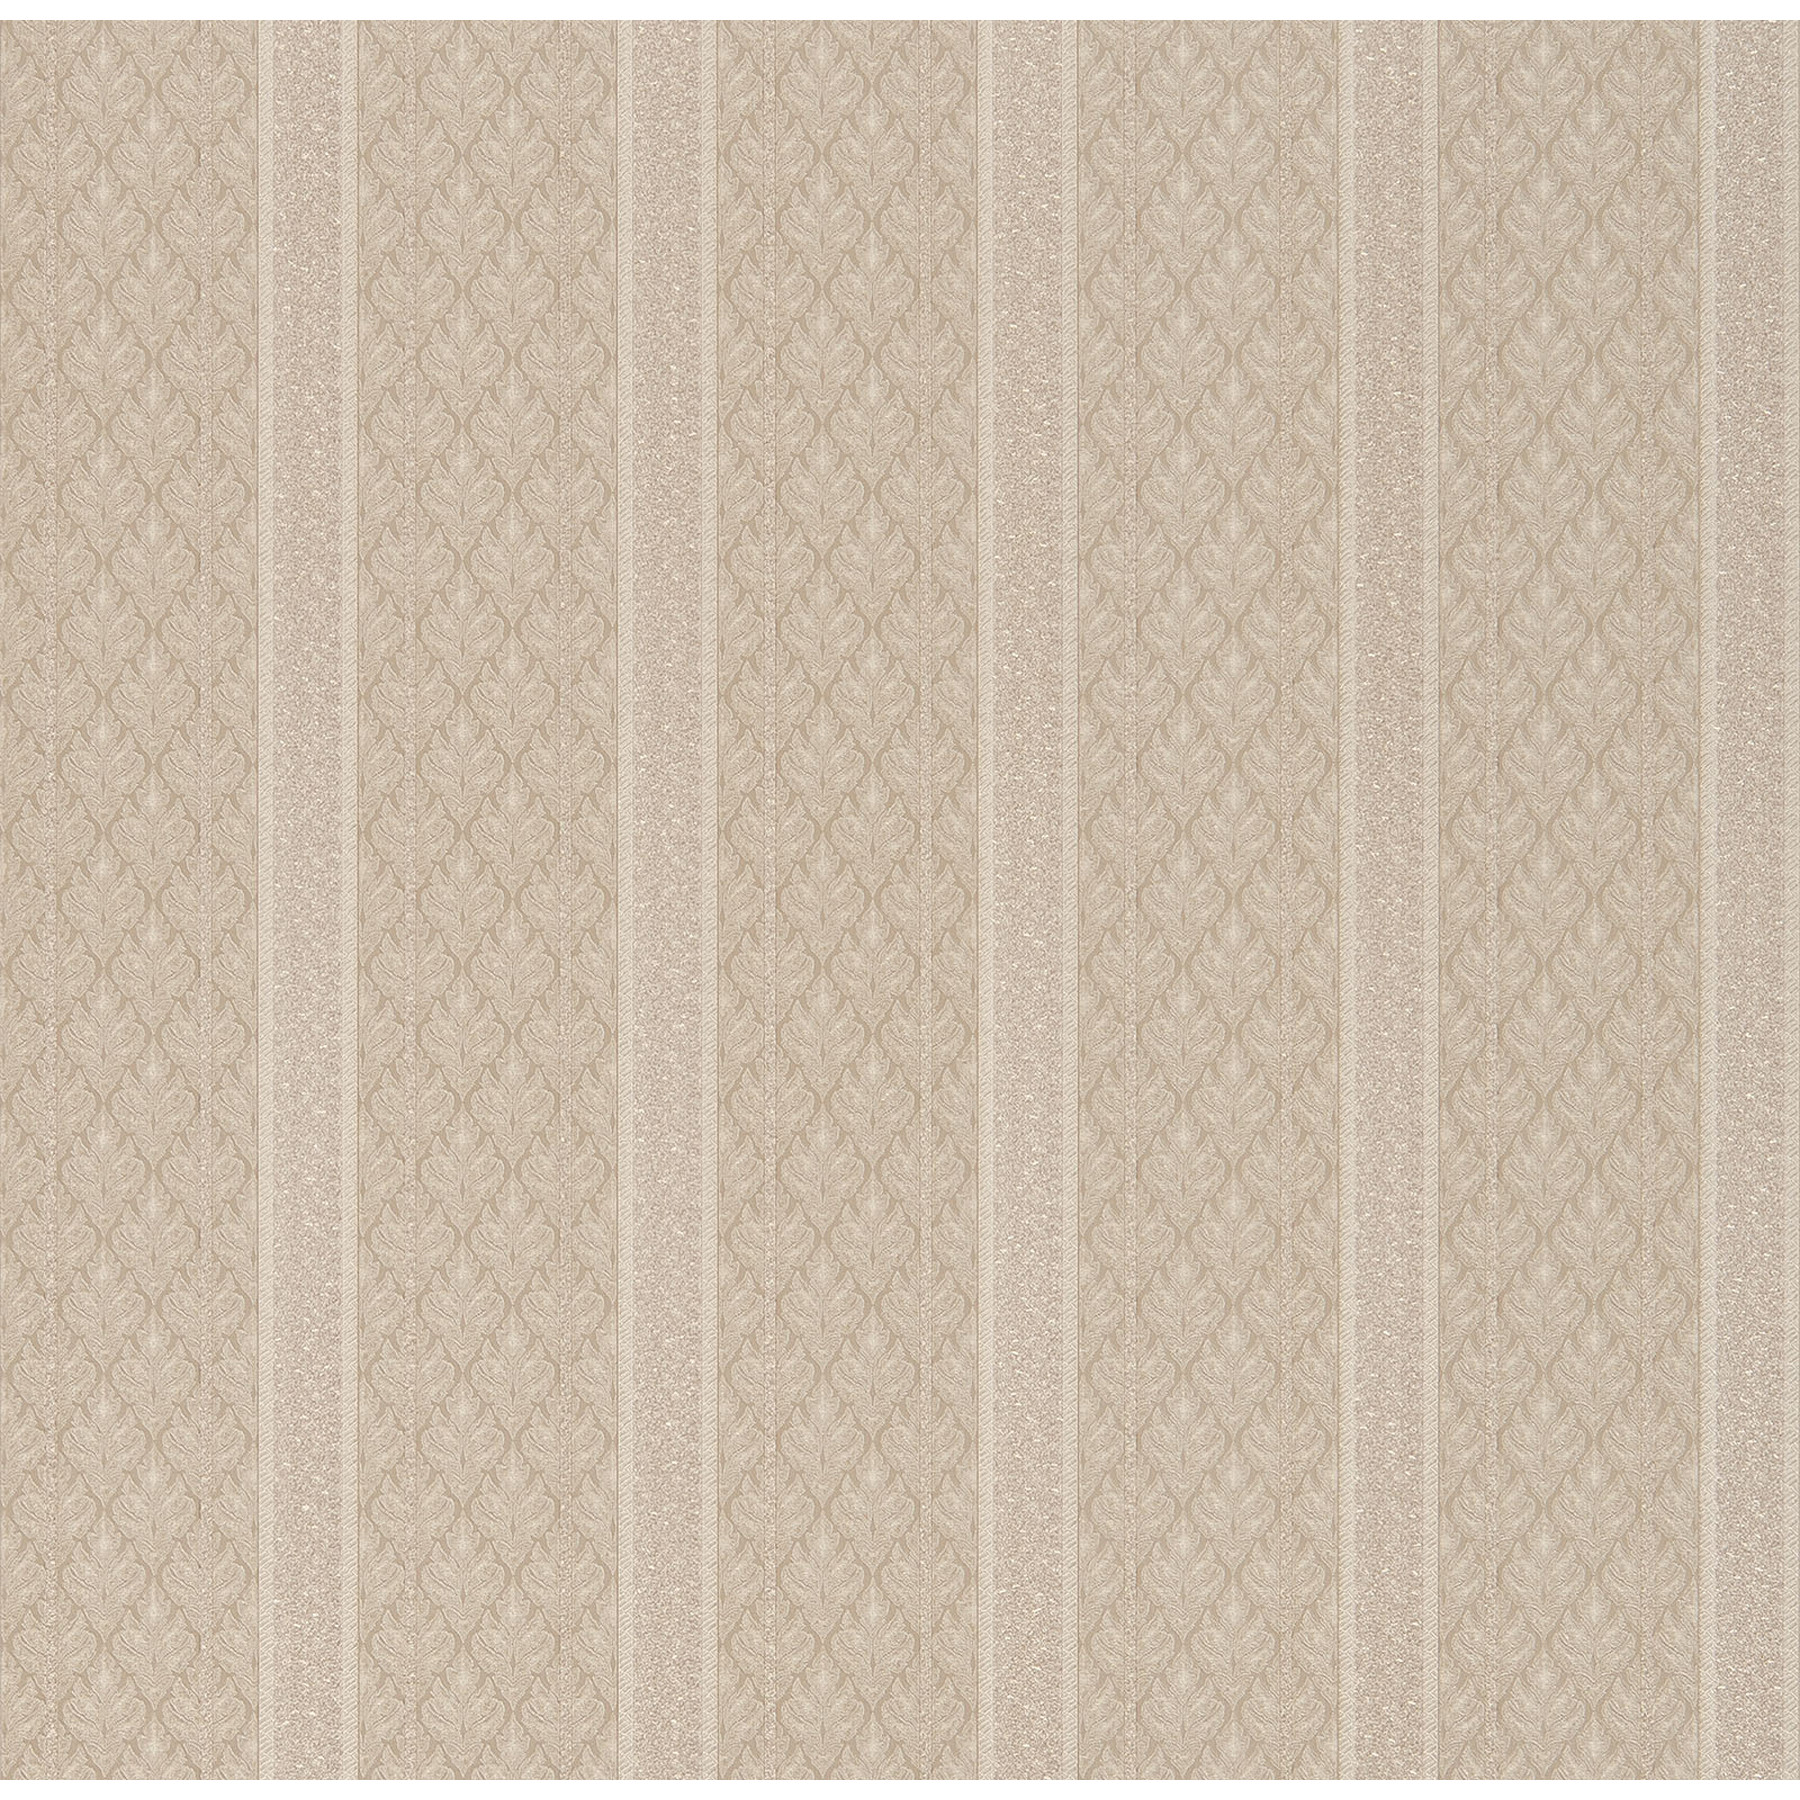 Brewster Home Fashions Venezia Ercole Brocade 33 x 27 Stripes 3D 1800x1800